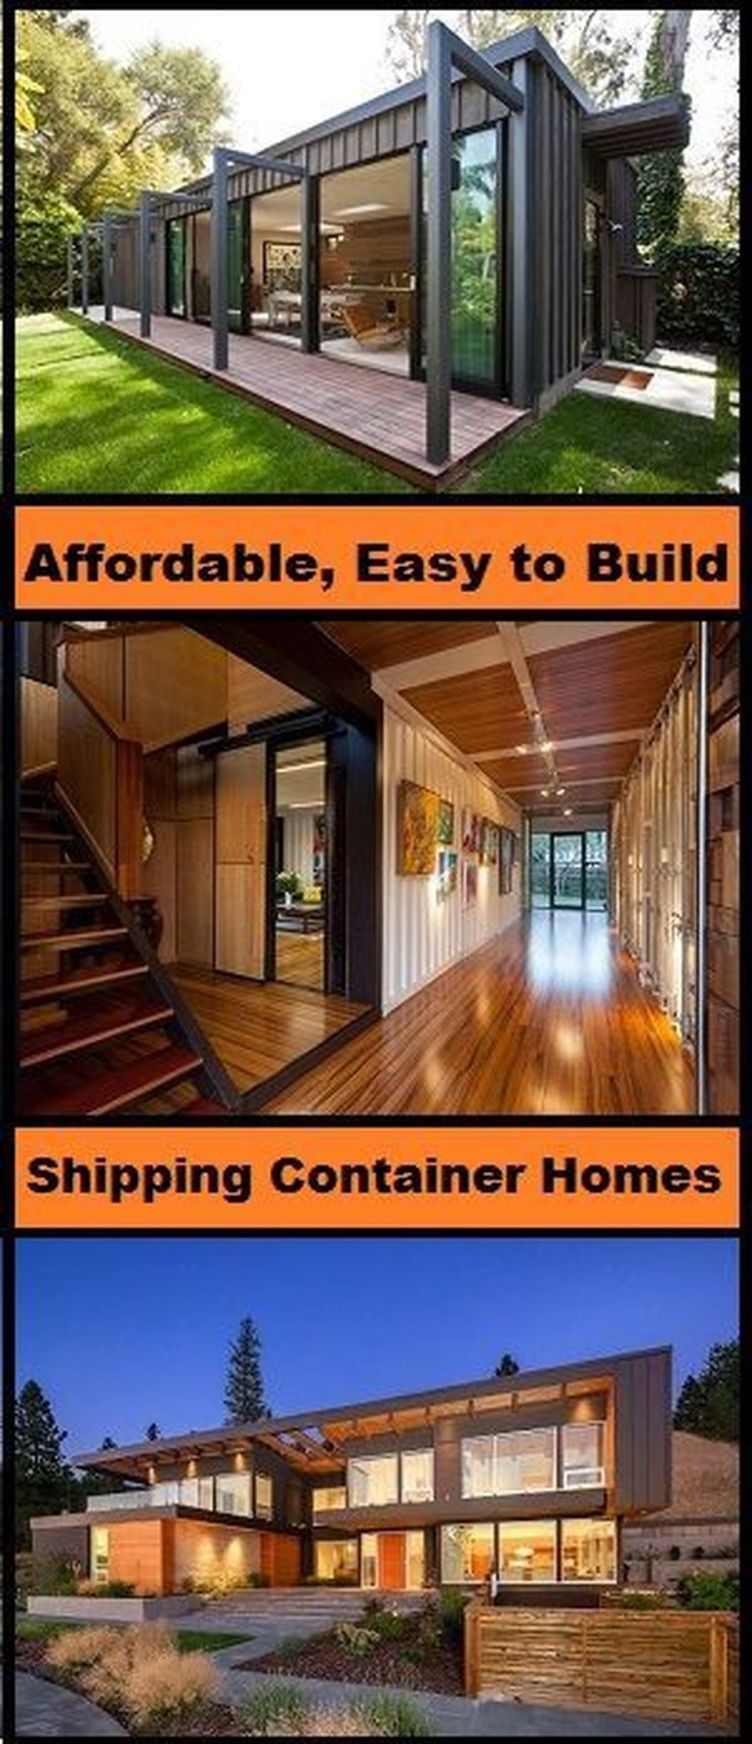 100 amazing shipping container house design ideas - Container Home Design Ideas